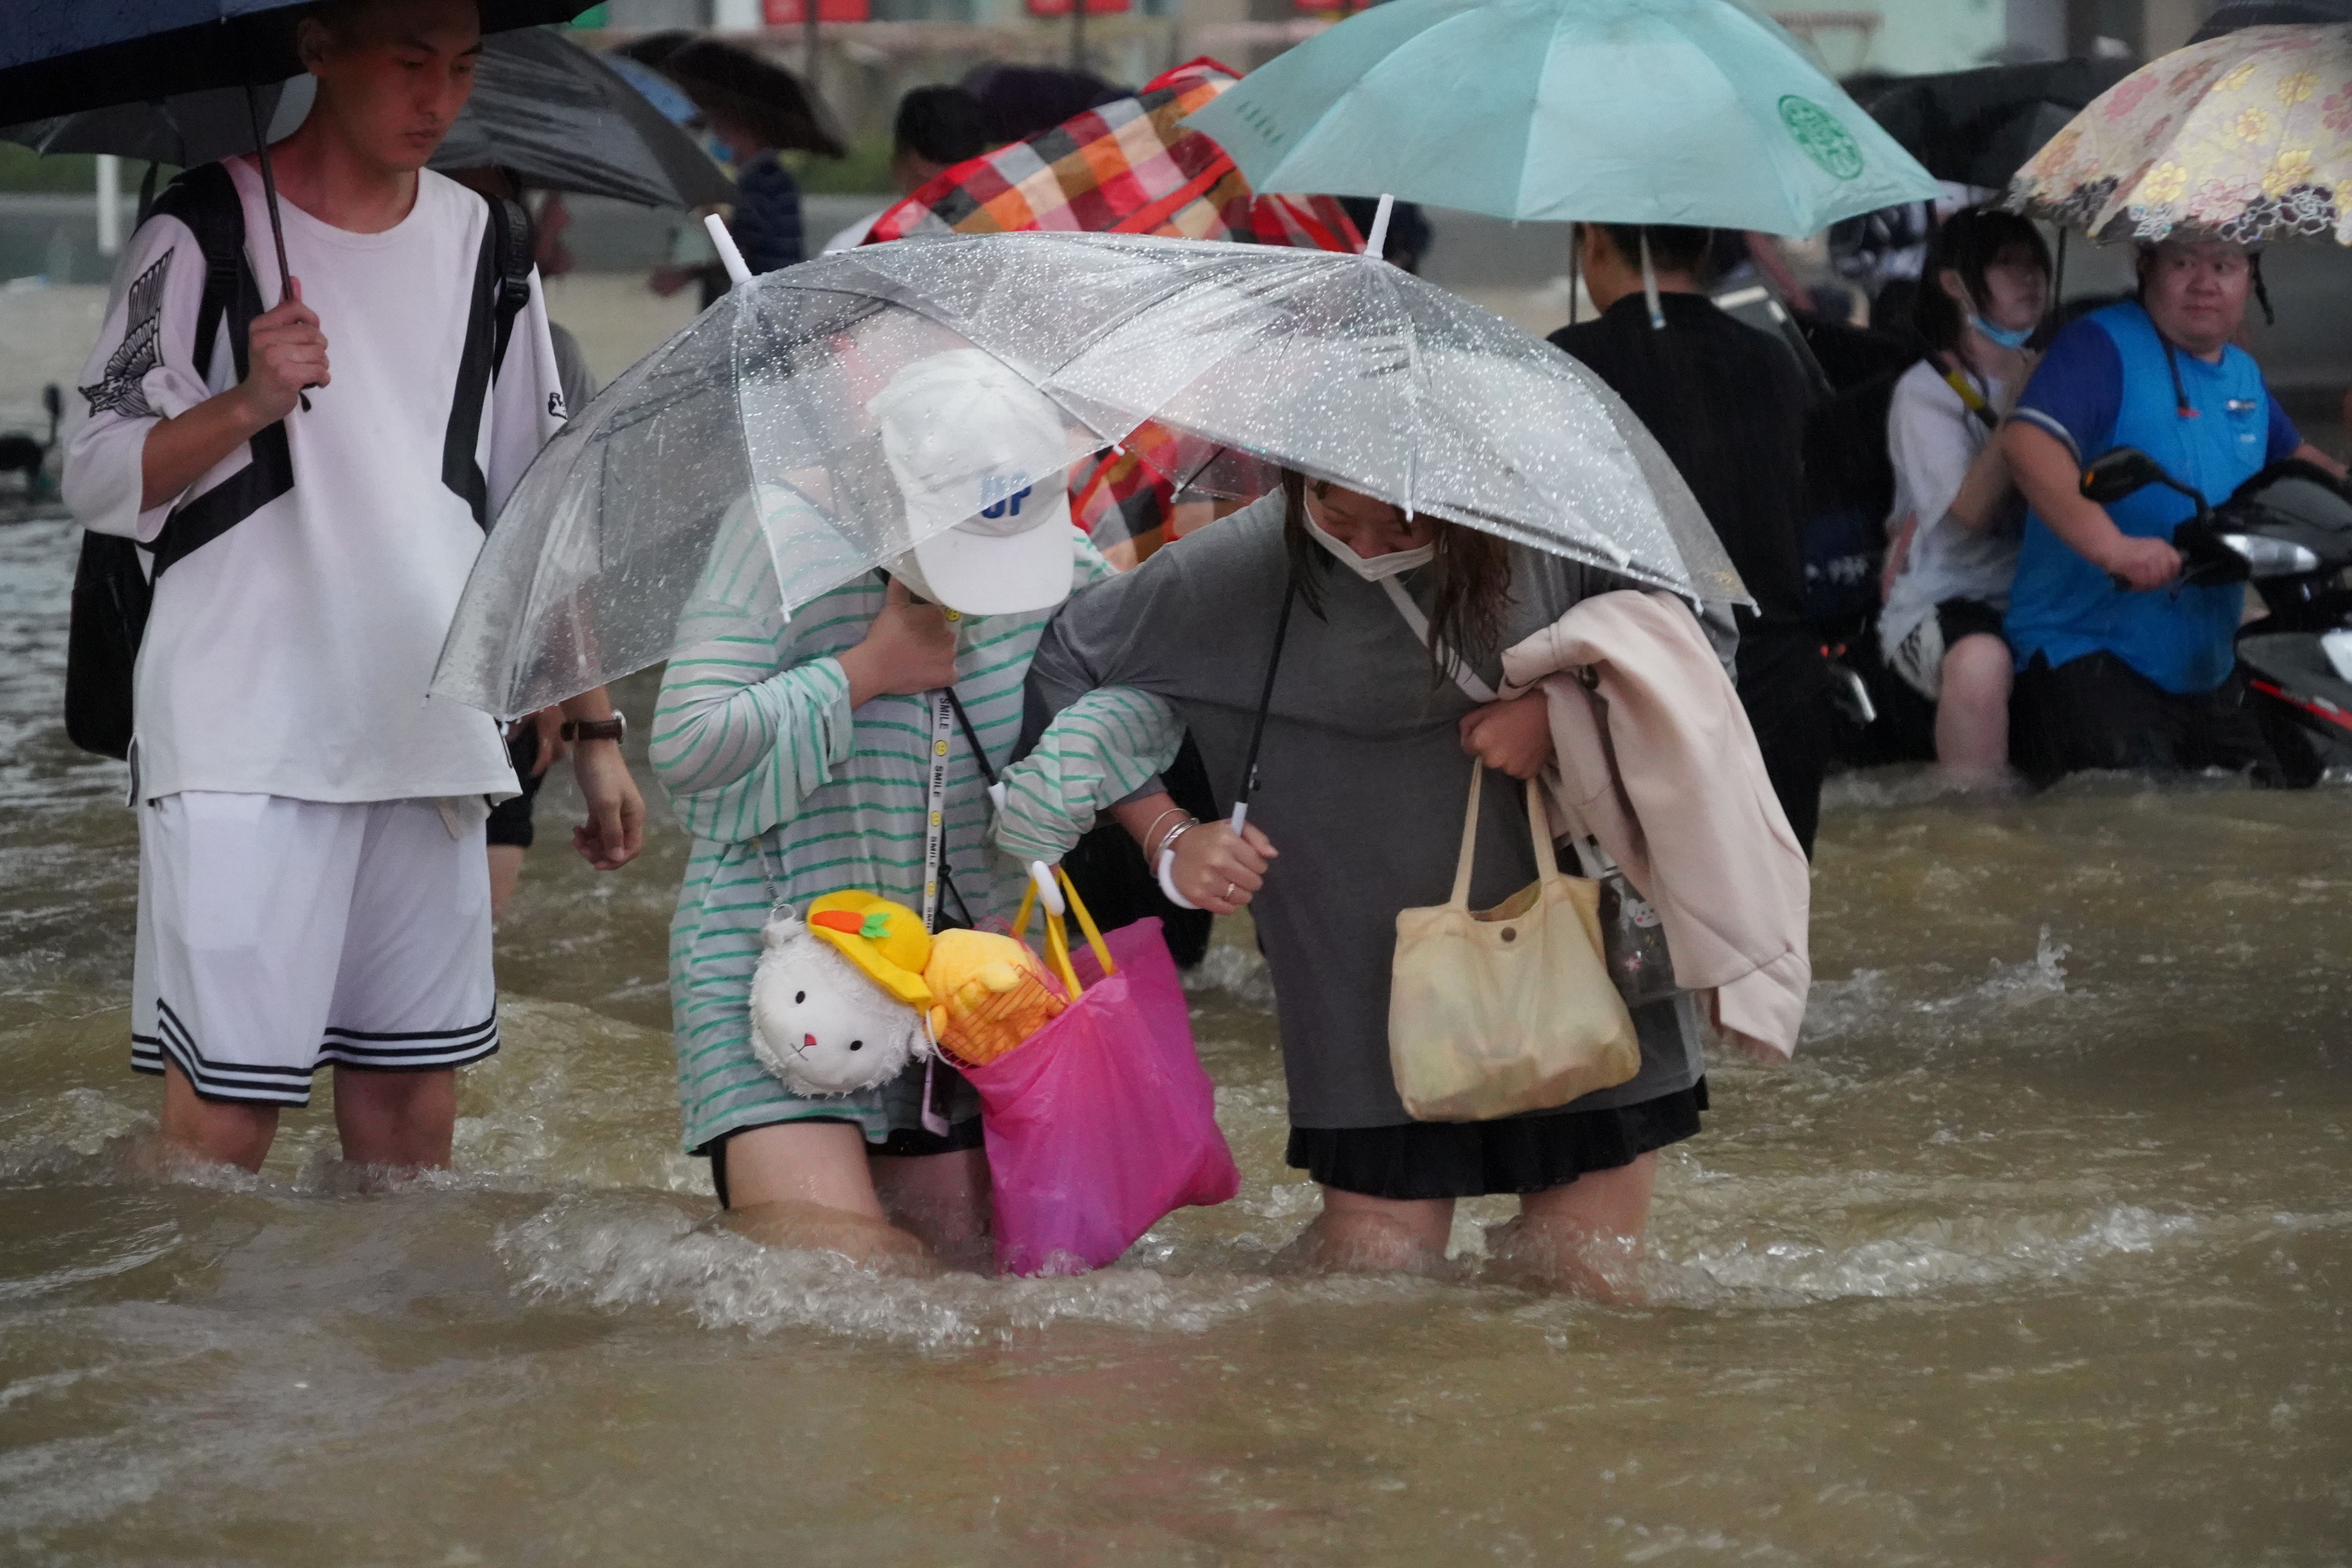 Residents, holding umbrellas amid heavy rainfall, wade through floodwaters on a road in Zhengzhou, Henan province, China July 20, 2021. Picture taken July 20, 2021. cnsphoto via REUTERS   ATTENTION EDITORS - THIS IMAGE WAS PROVIDED BY A THIRD PARTY. CHINA OUT.